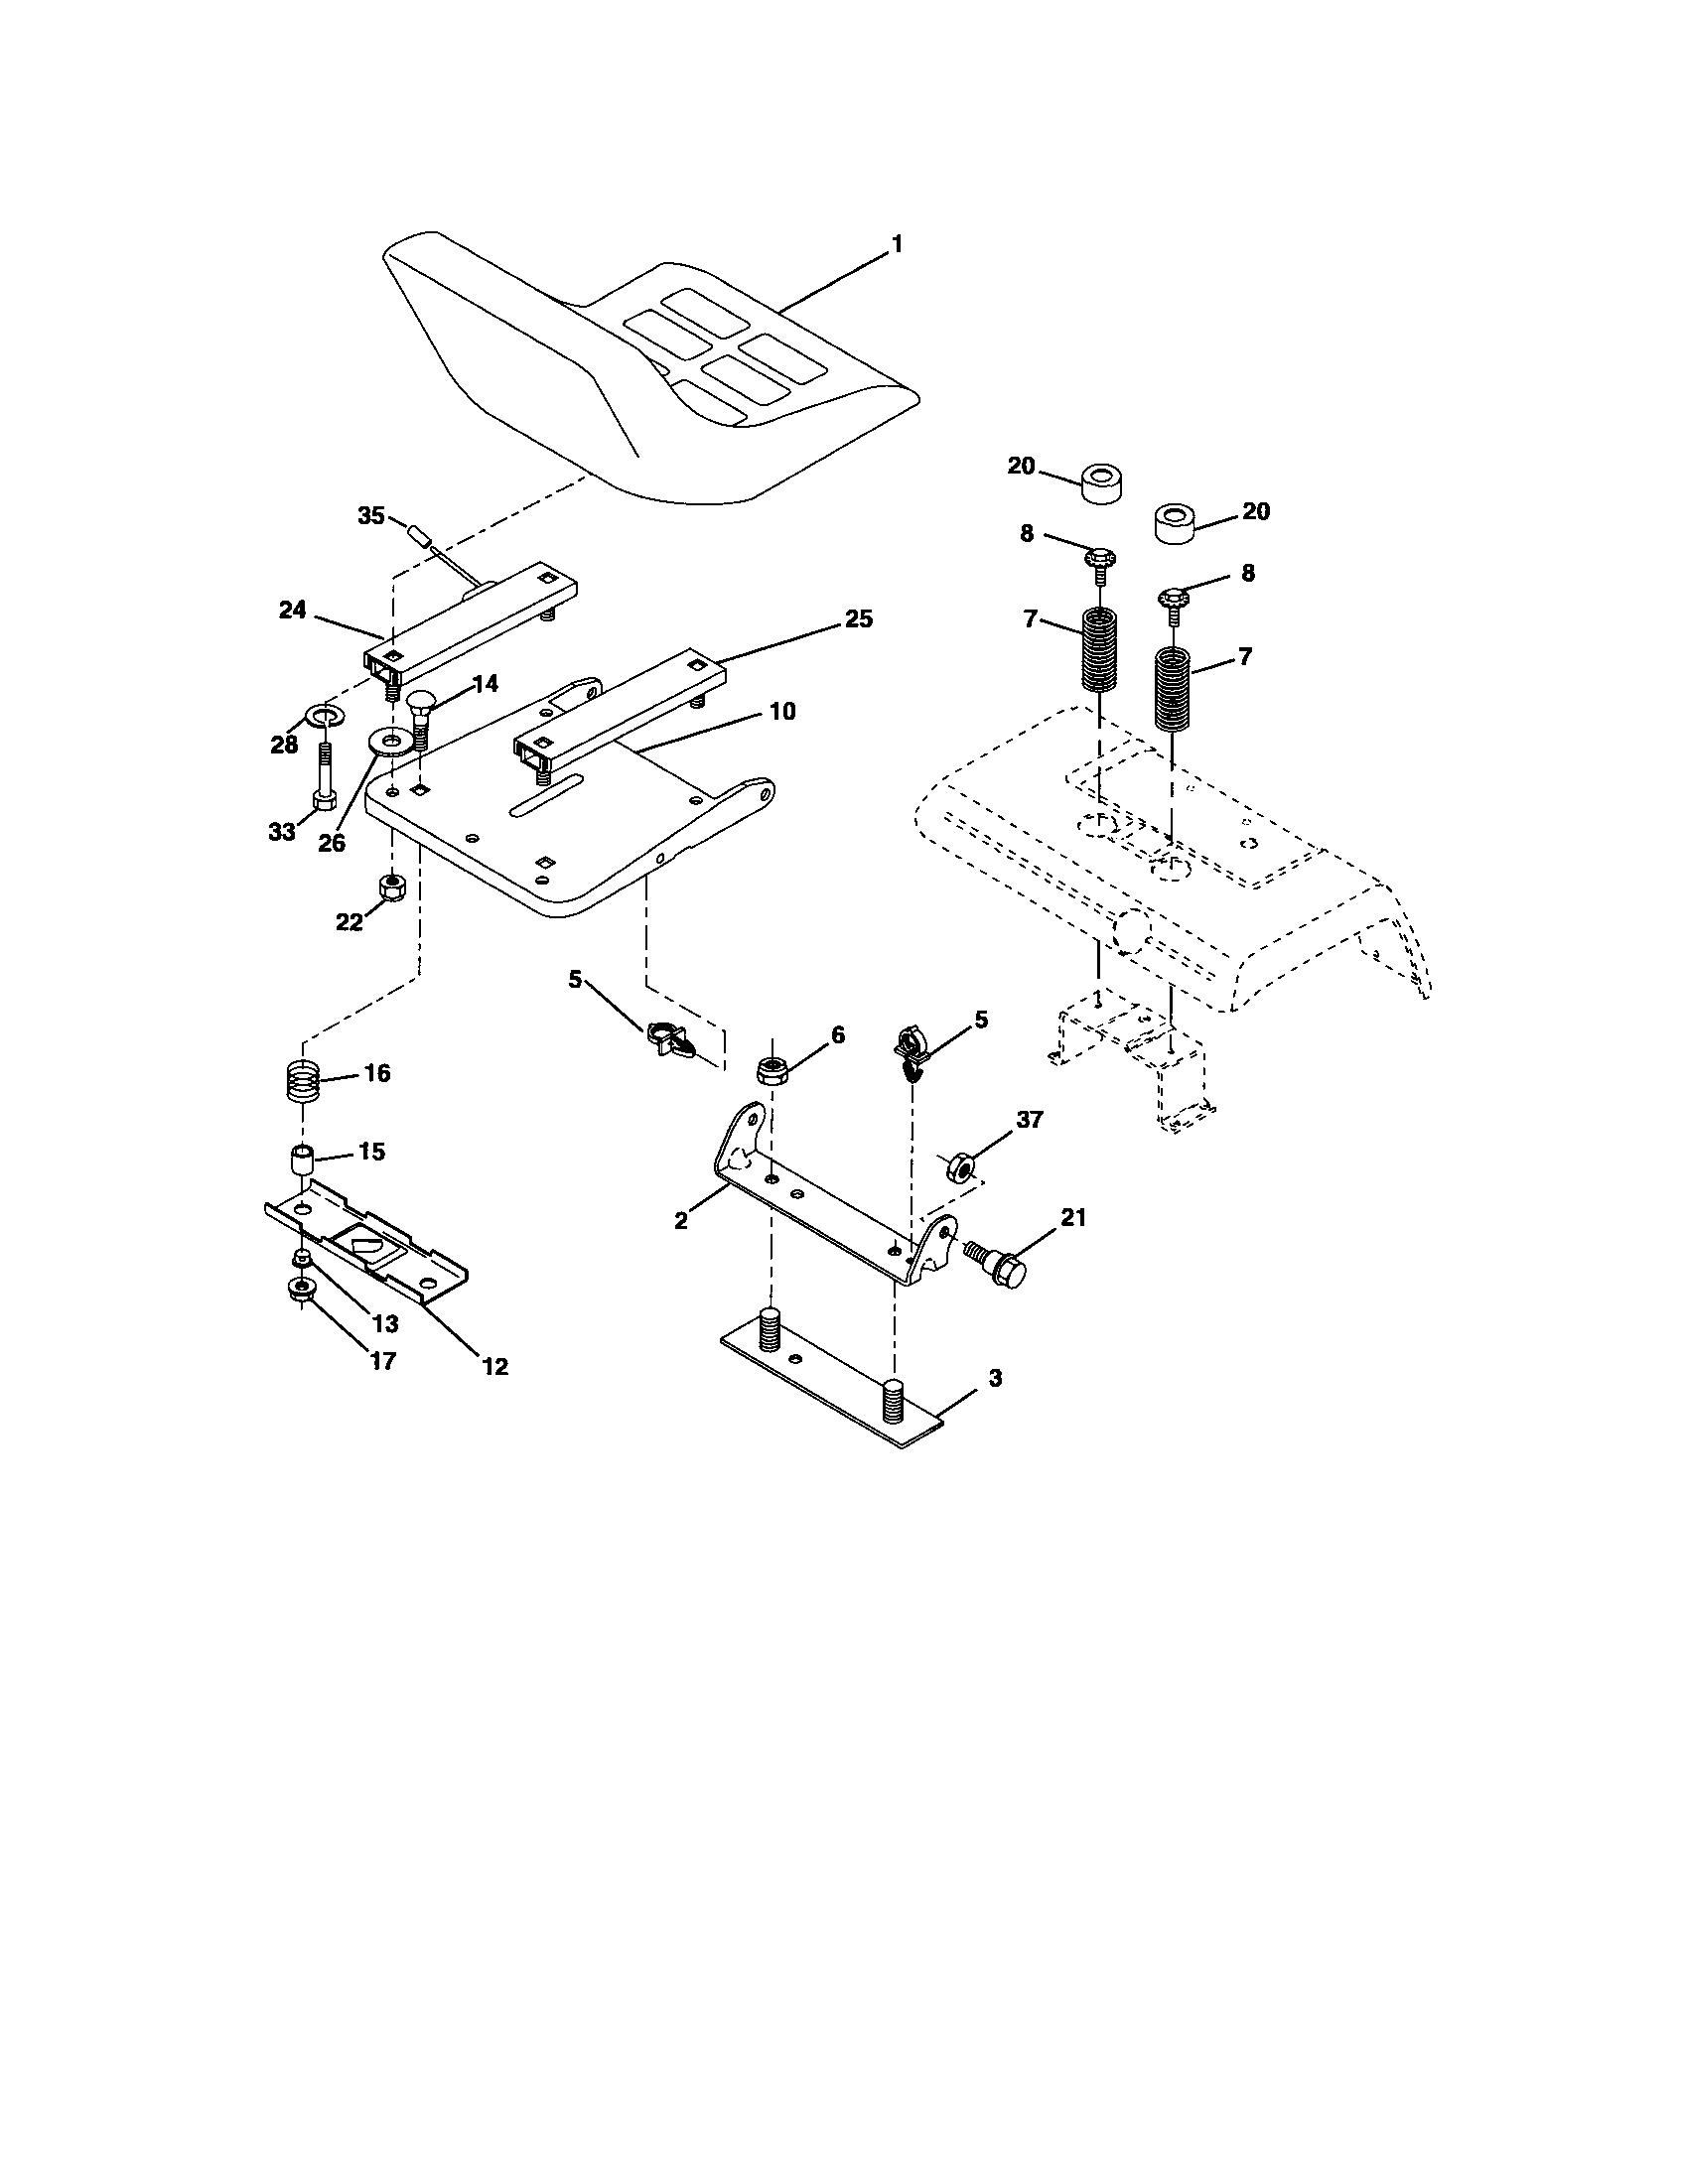 700r4 Wiring A Non Computer, 700r4, Free Engine Image For